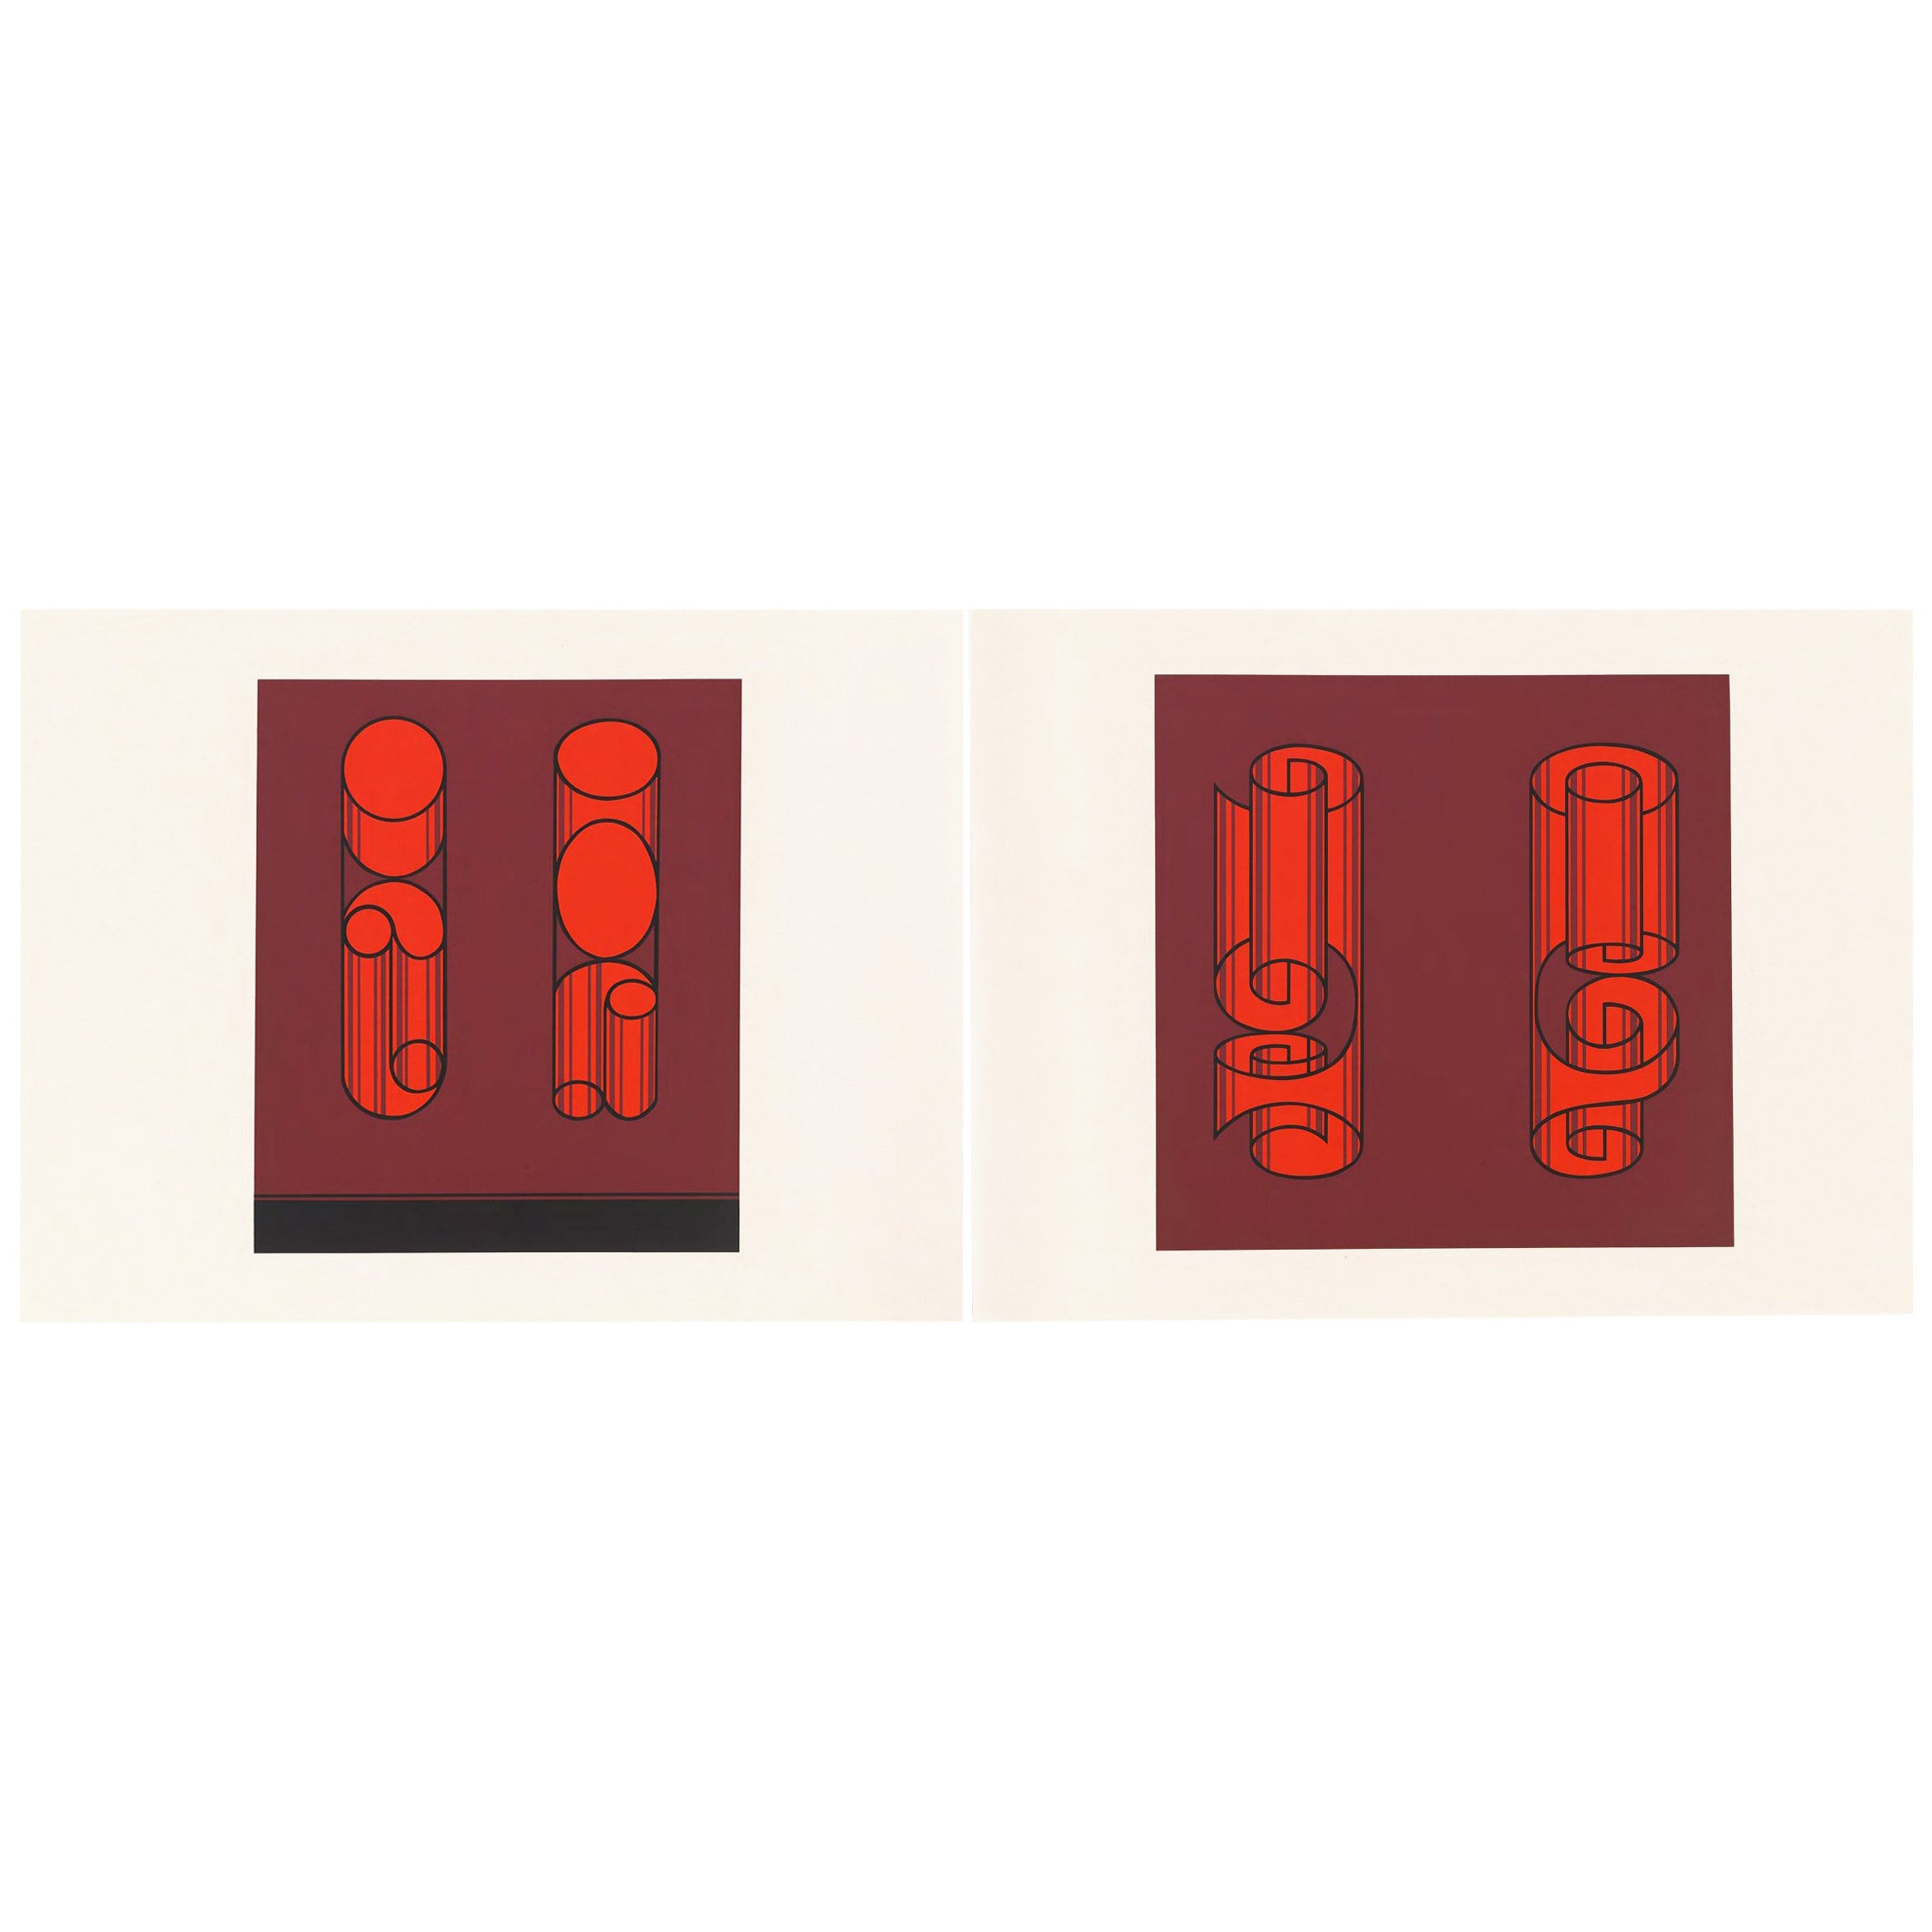 Josef Albers Screen Print Diptych from Formulation, Articulation